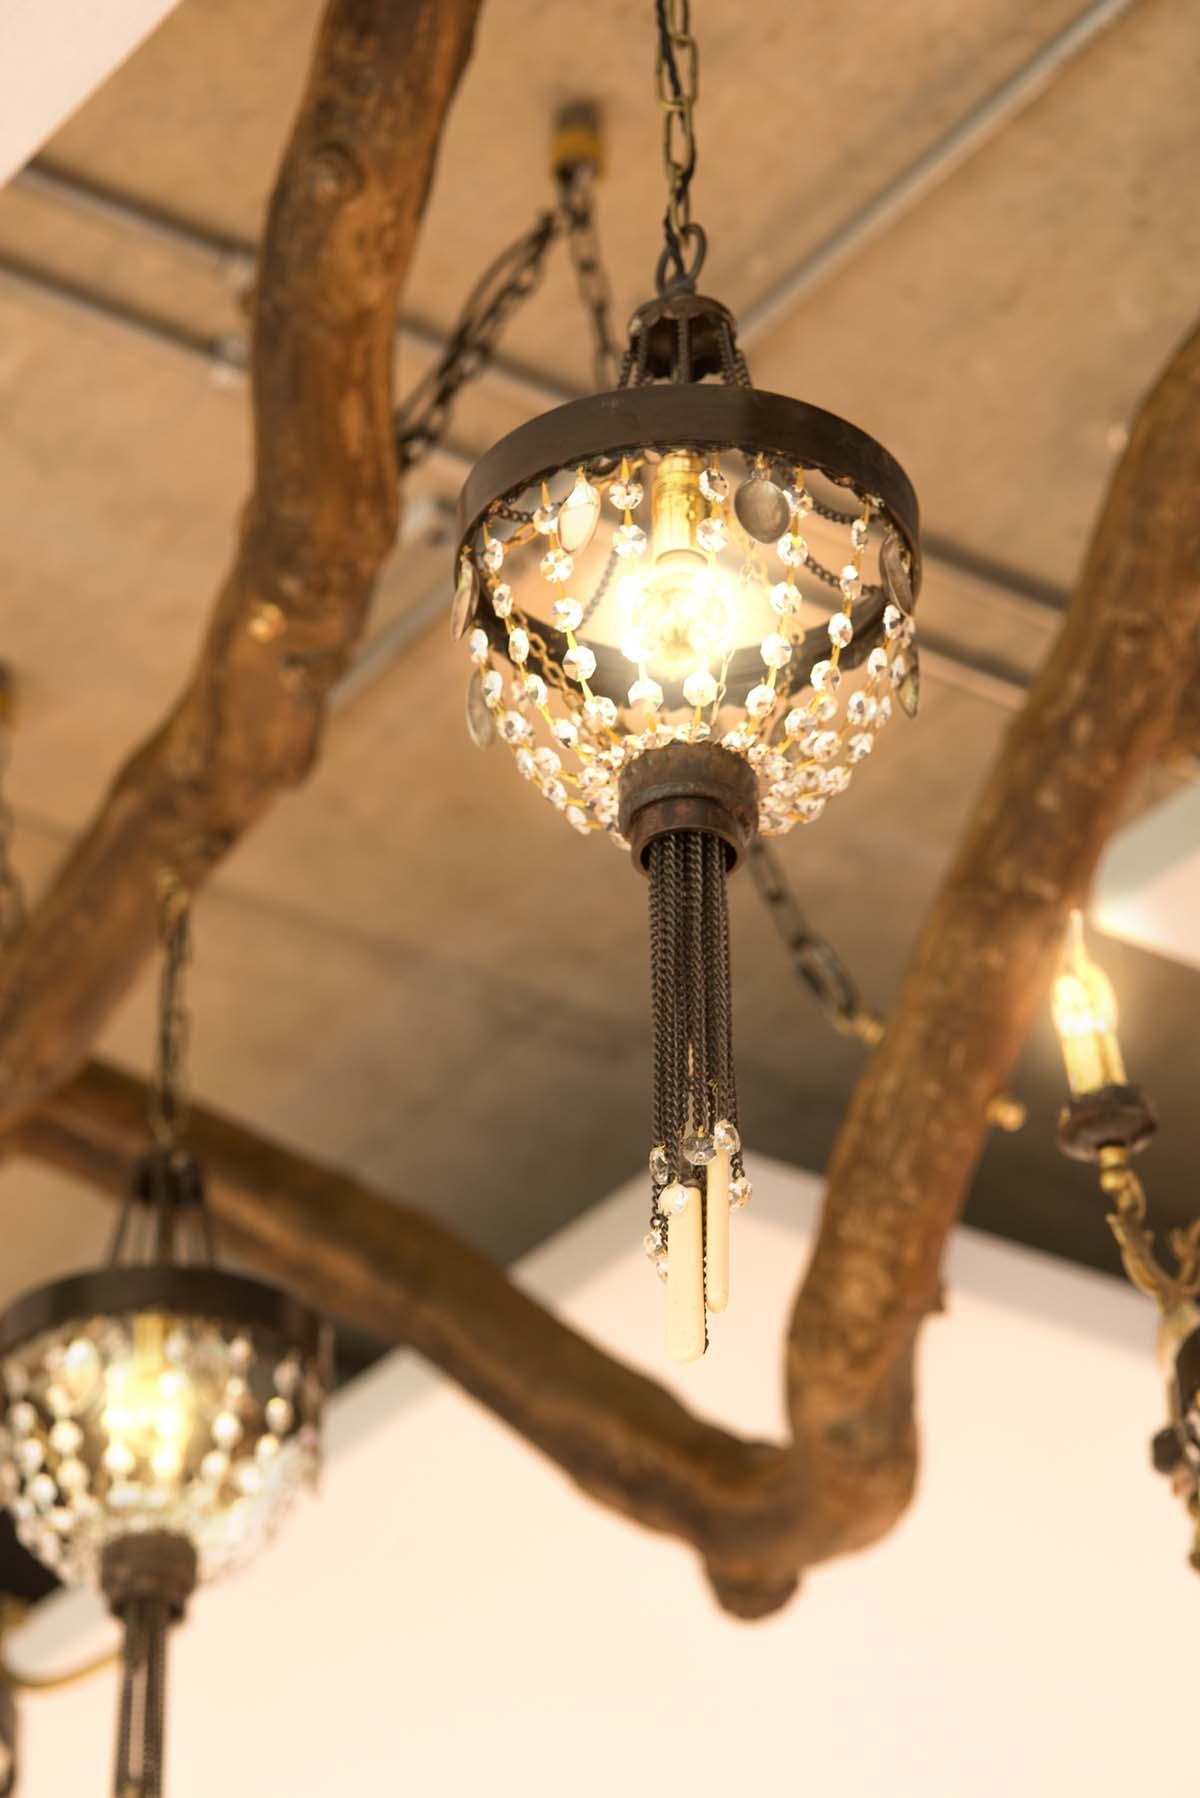 Chandelier made from repurposed materials. Cutlery, crystals and chain.